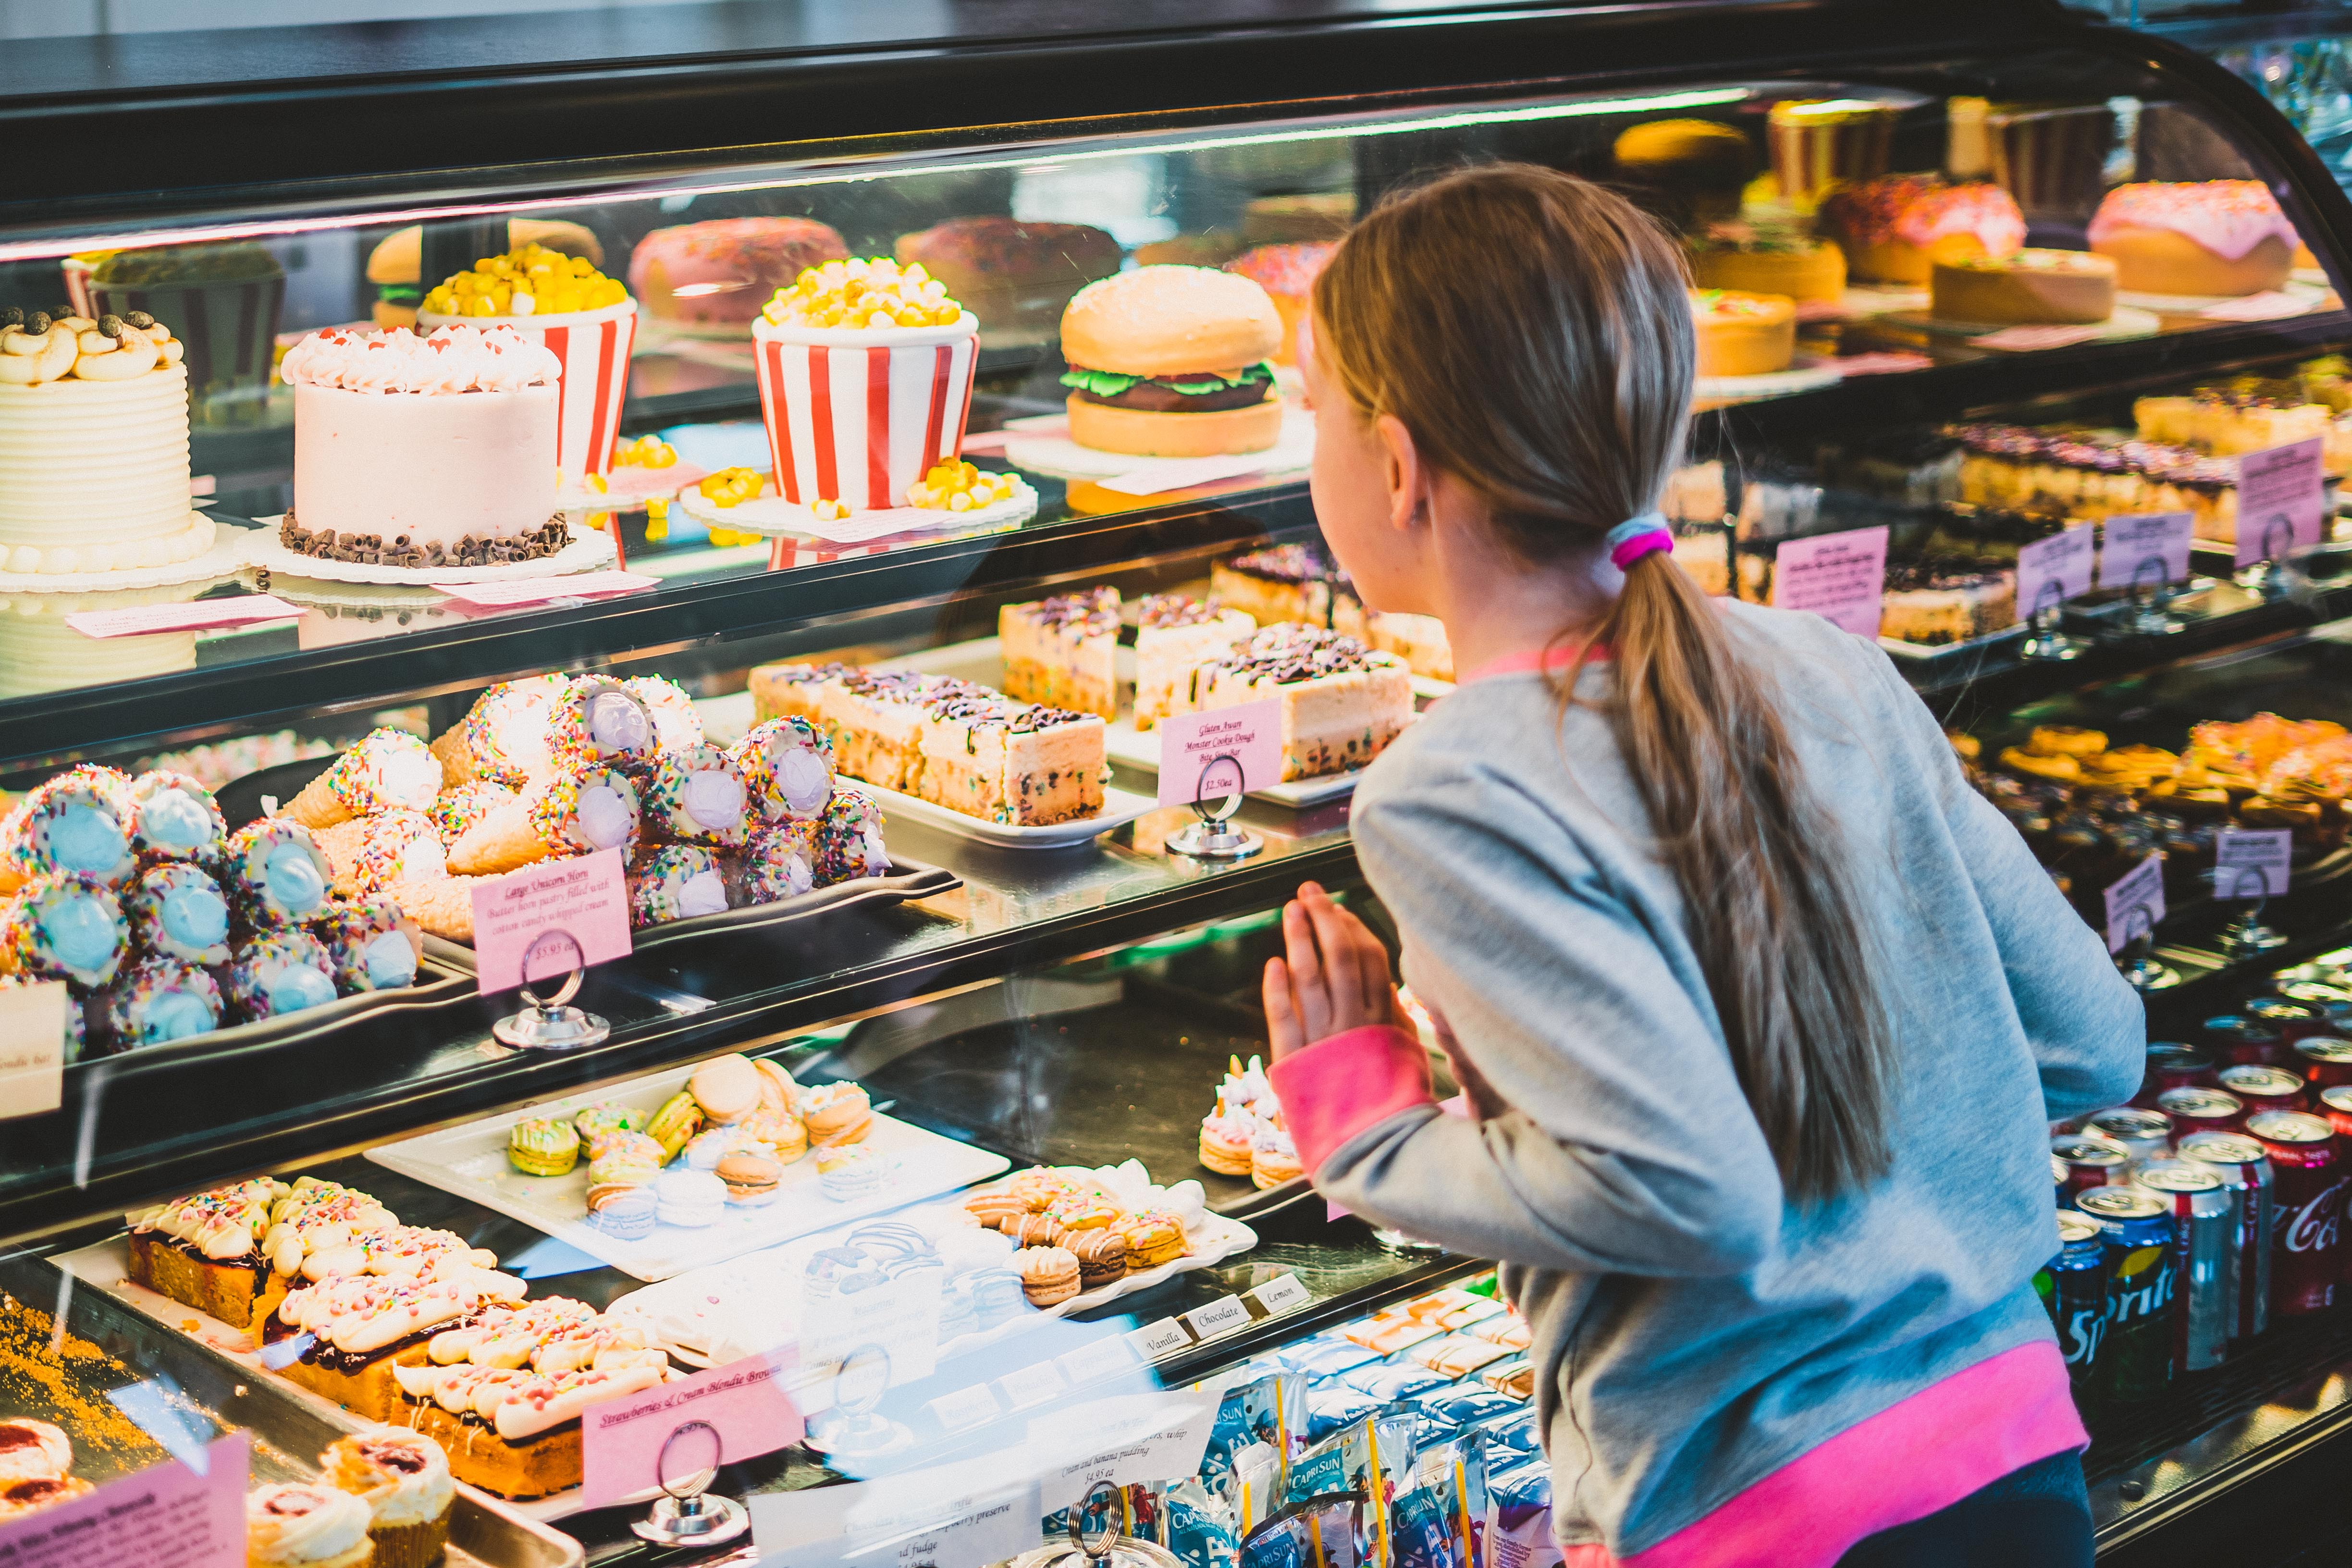 Child looking at treats on display